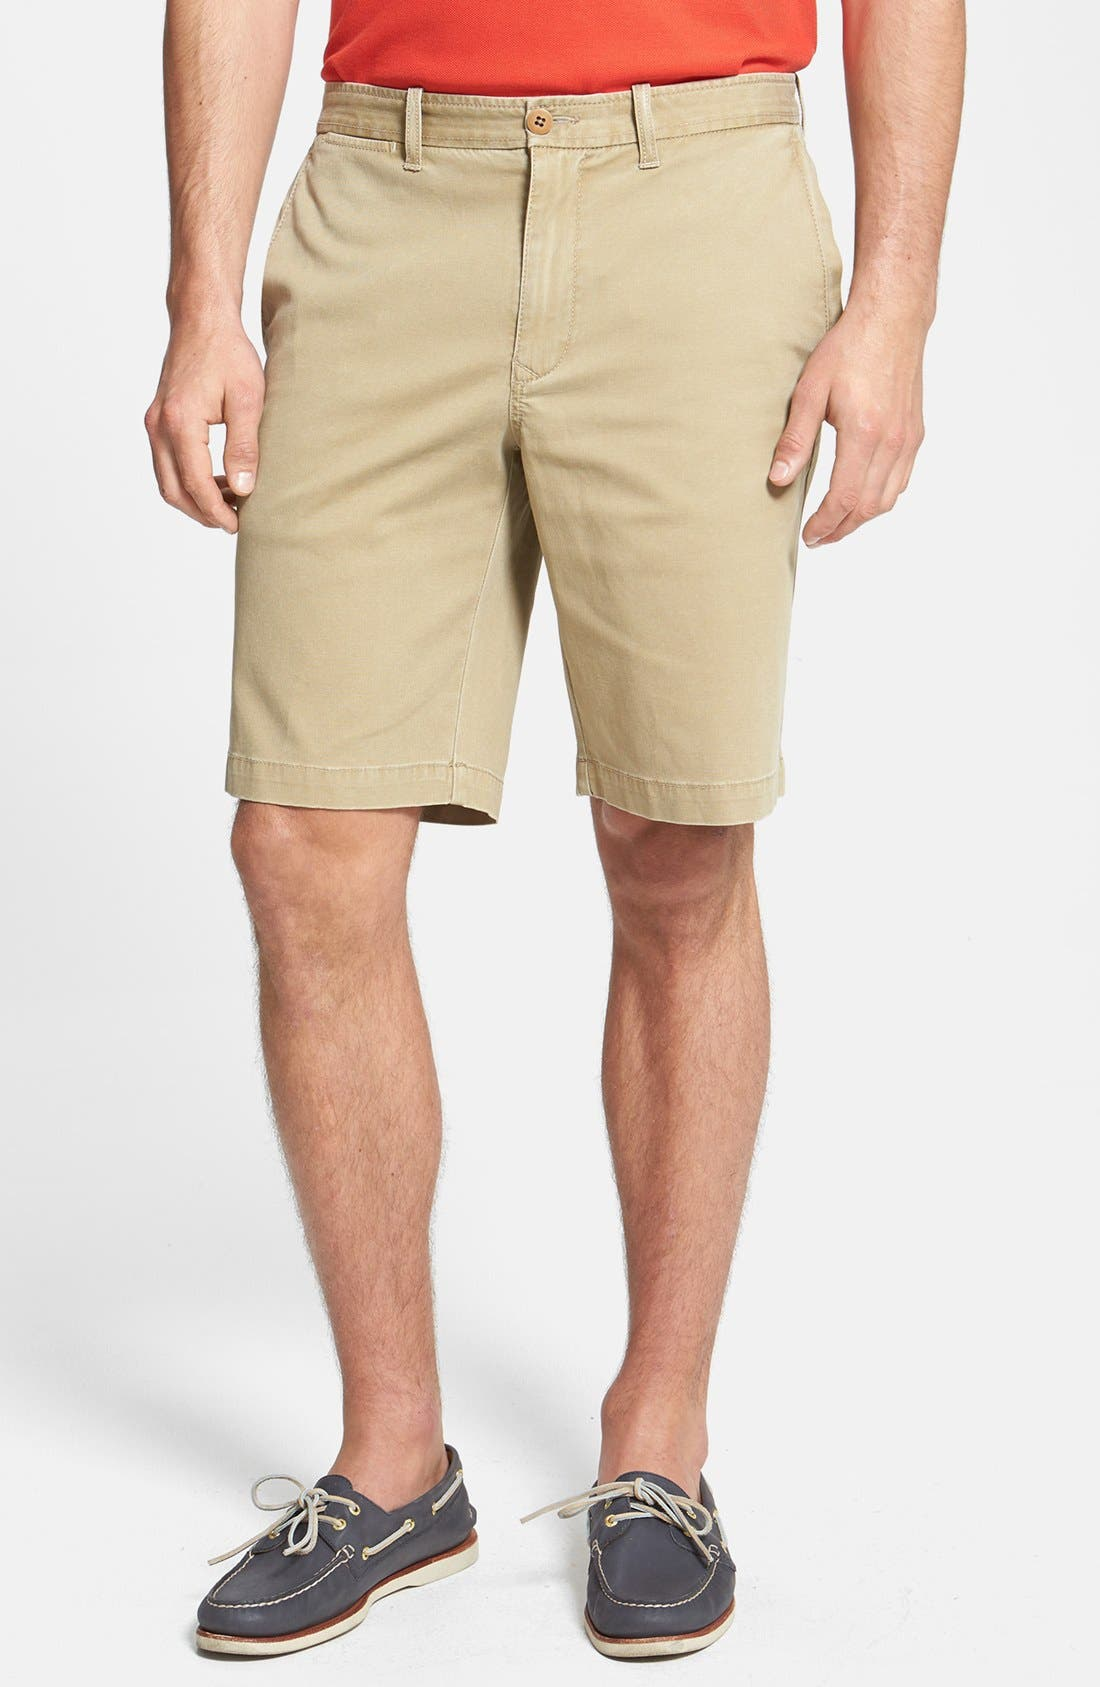 'Bedford & Son' Corduroy Walking Shorts,                             Alternate thumbnail 5, color,                             200